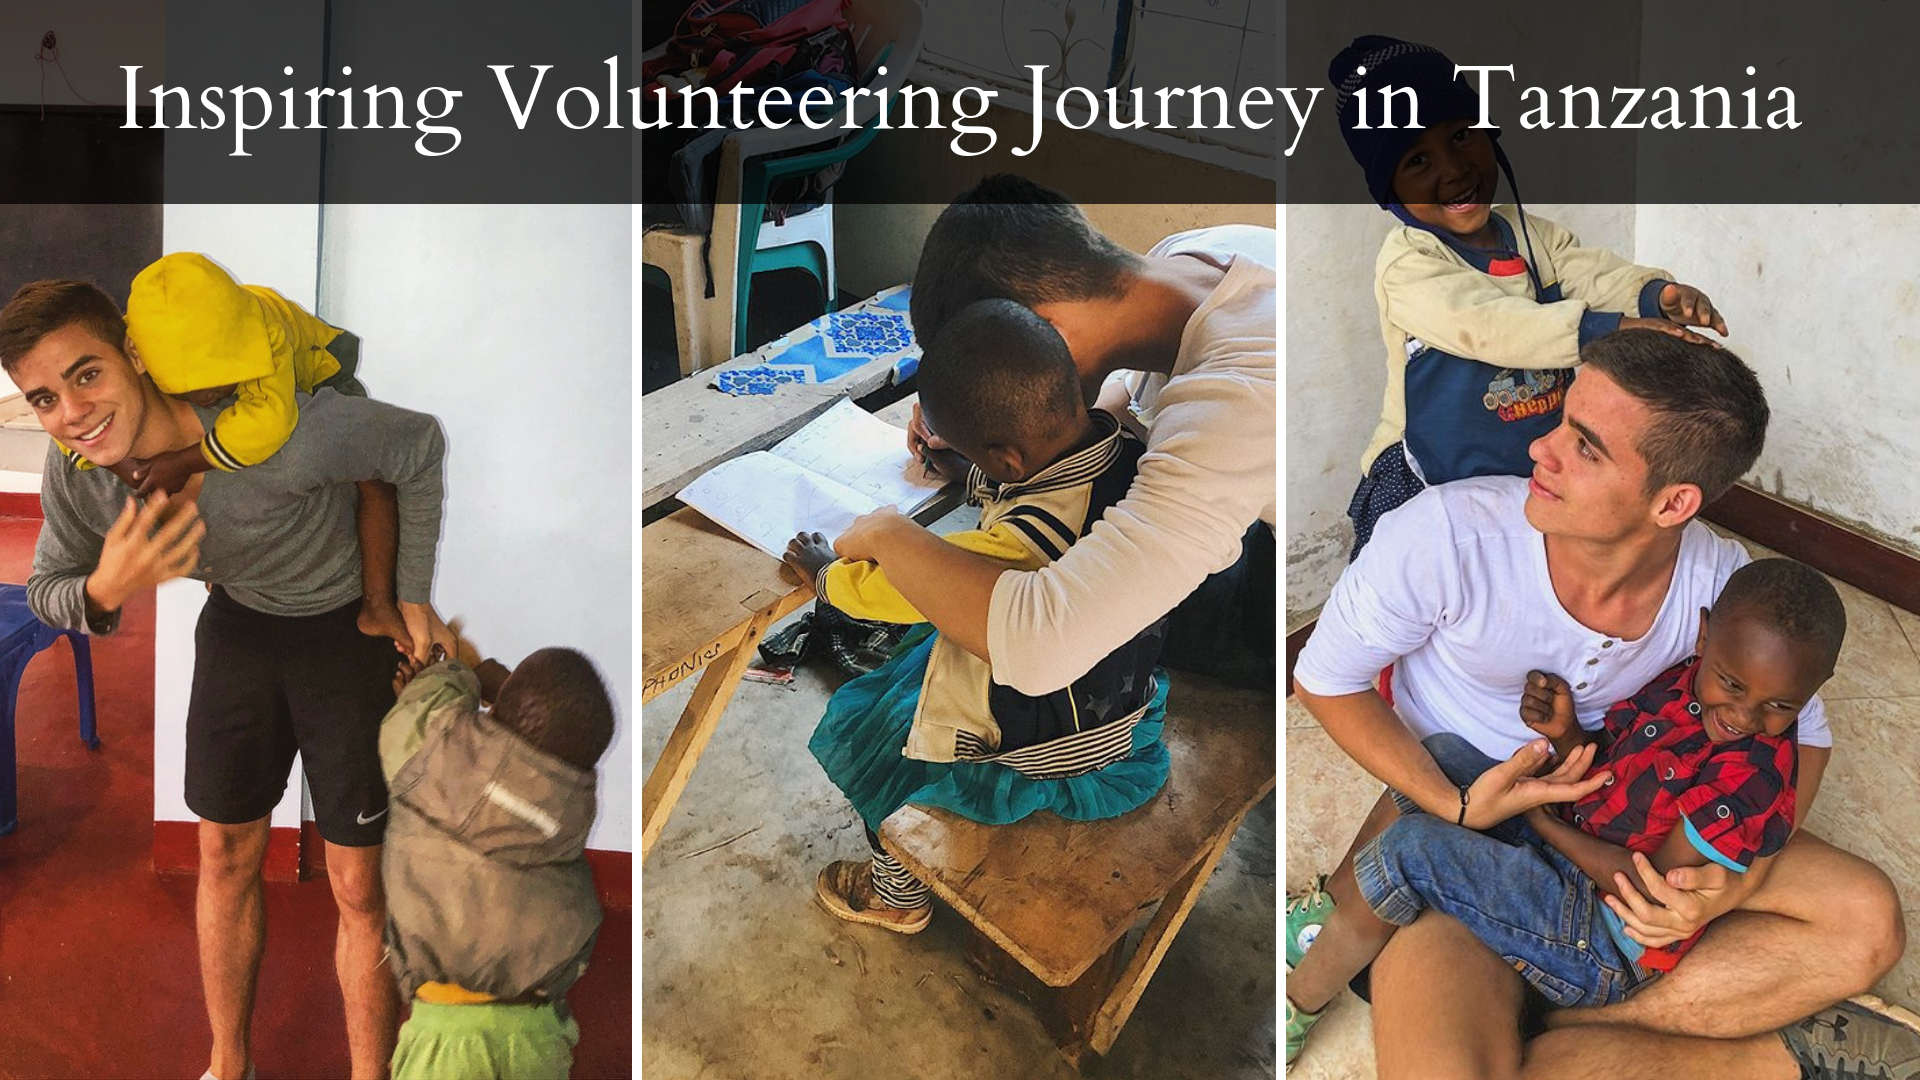 volunteering journey in Tanzania